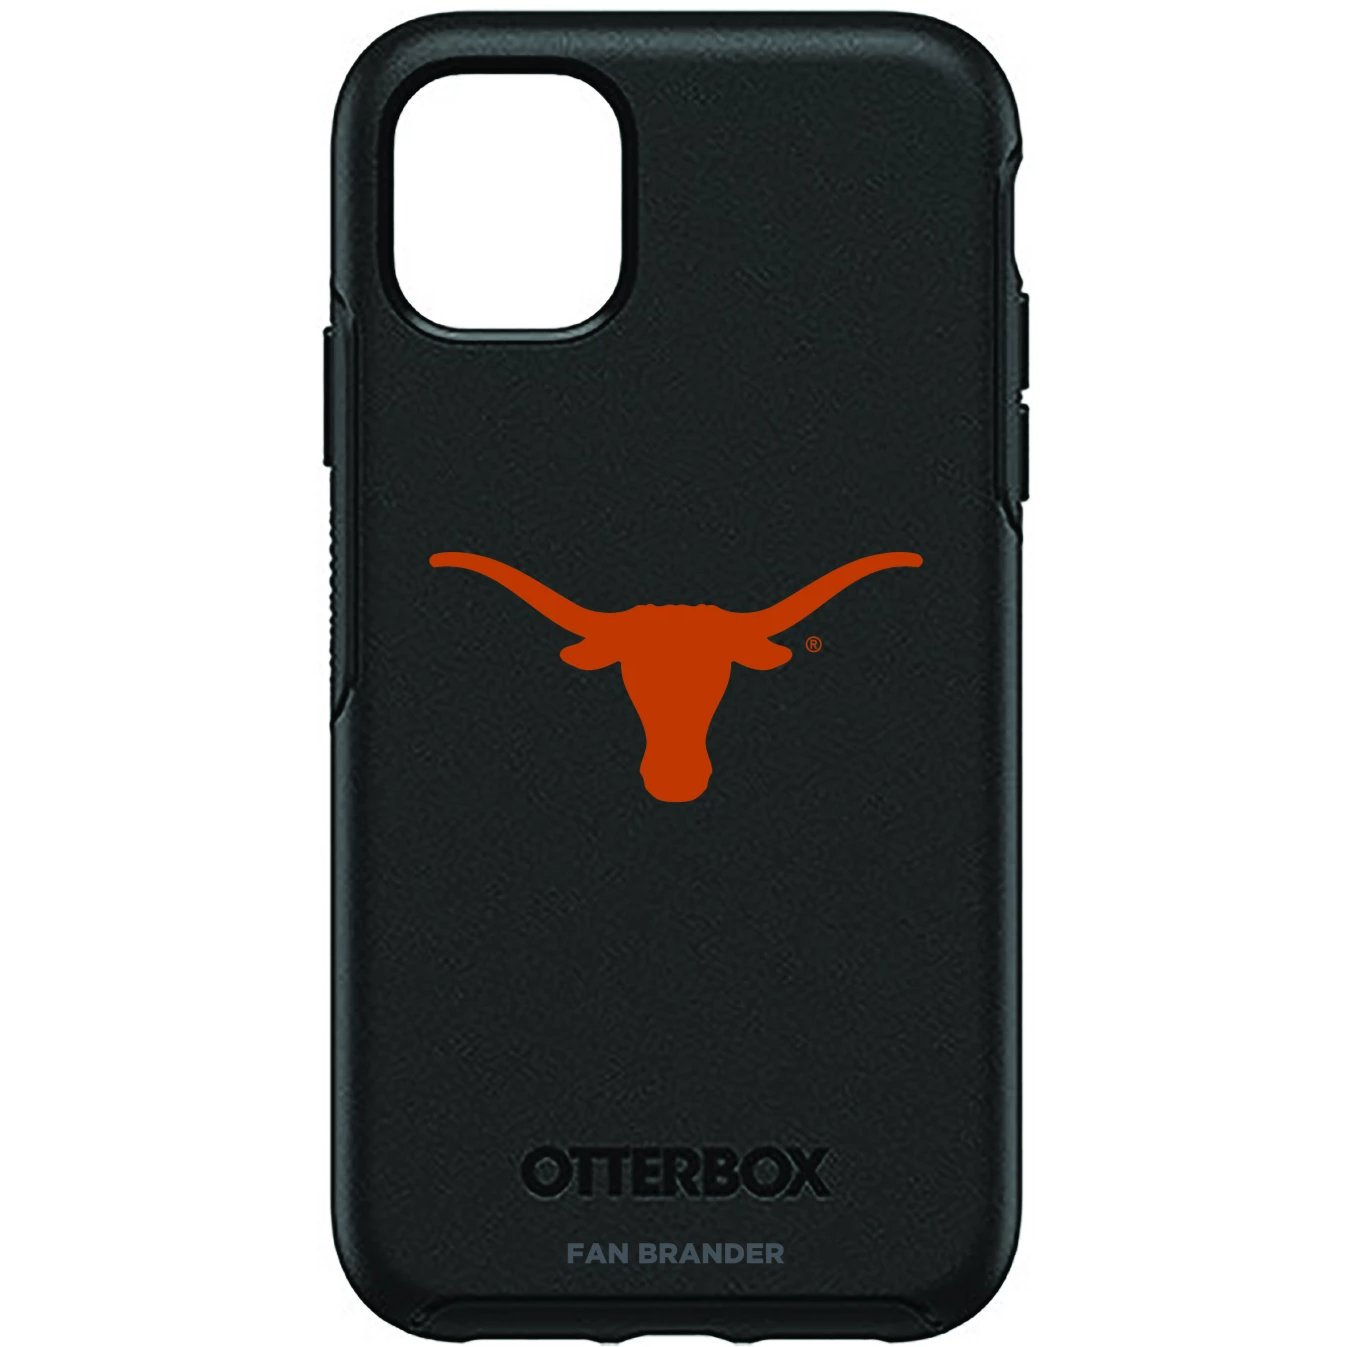 Texas Longhorns Otterbox Symmetry Case (for iPhone 11, Pro, Pro Max)